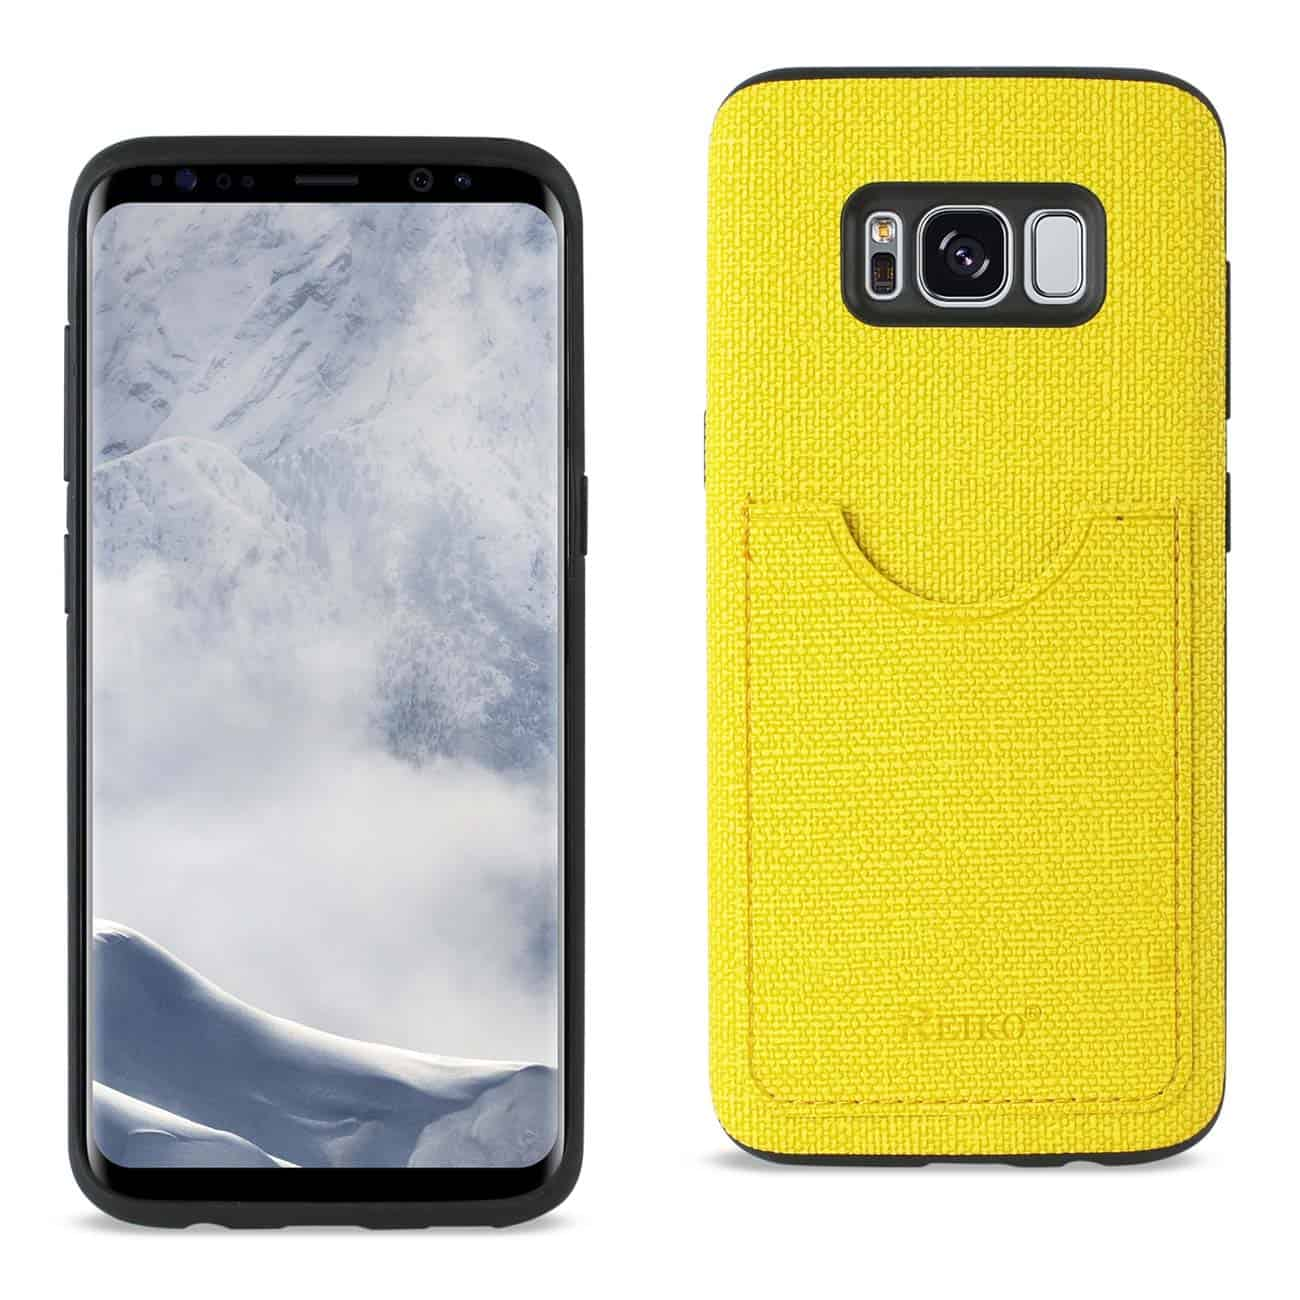 SAMSUNG GALAXY S8 EDGE/ S8 PLUS ANTI-SLIP TEXTURE PROTECTOR COVER WITH CARD SLOT IN YELLOW